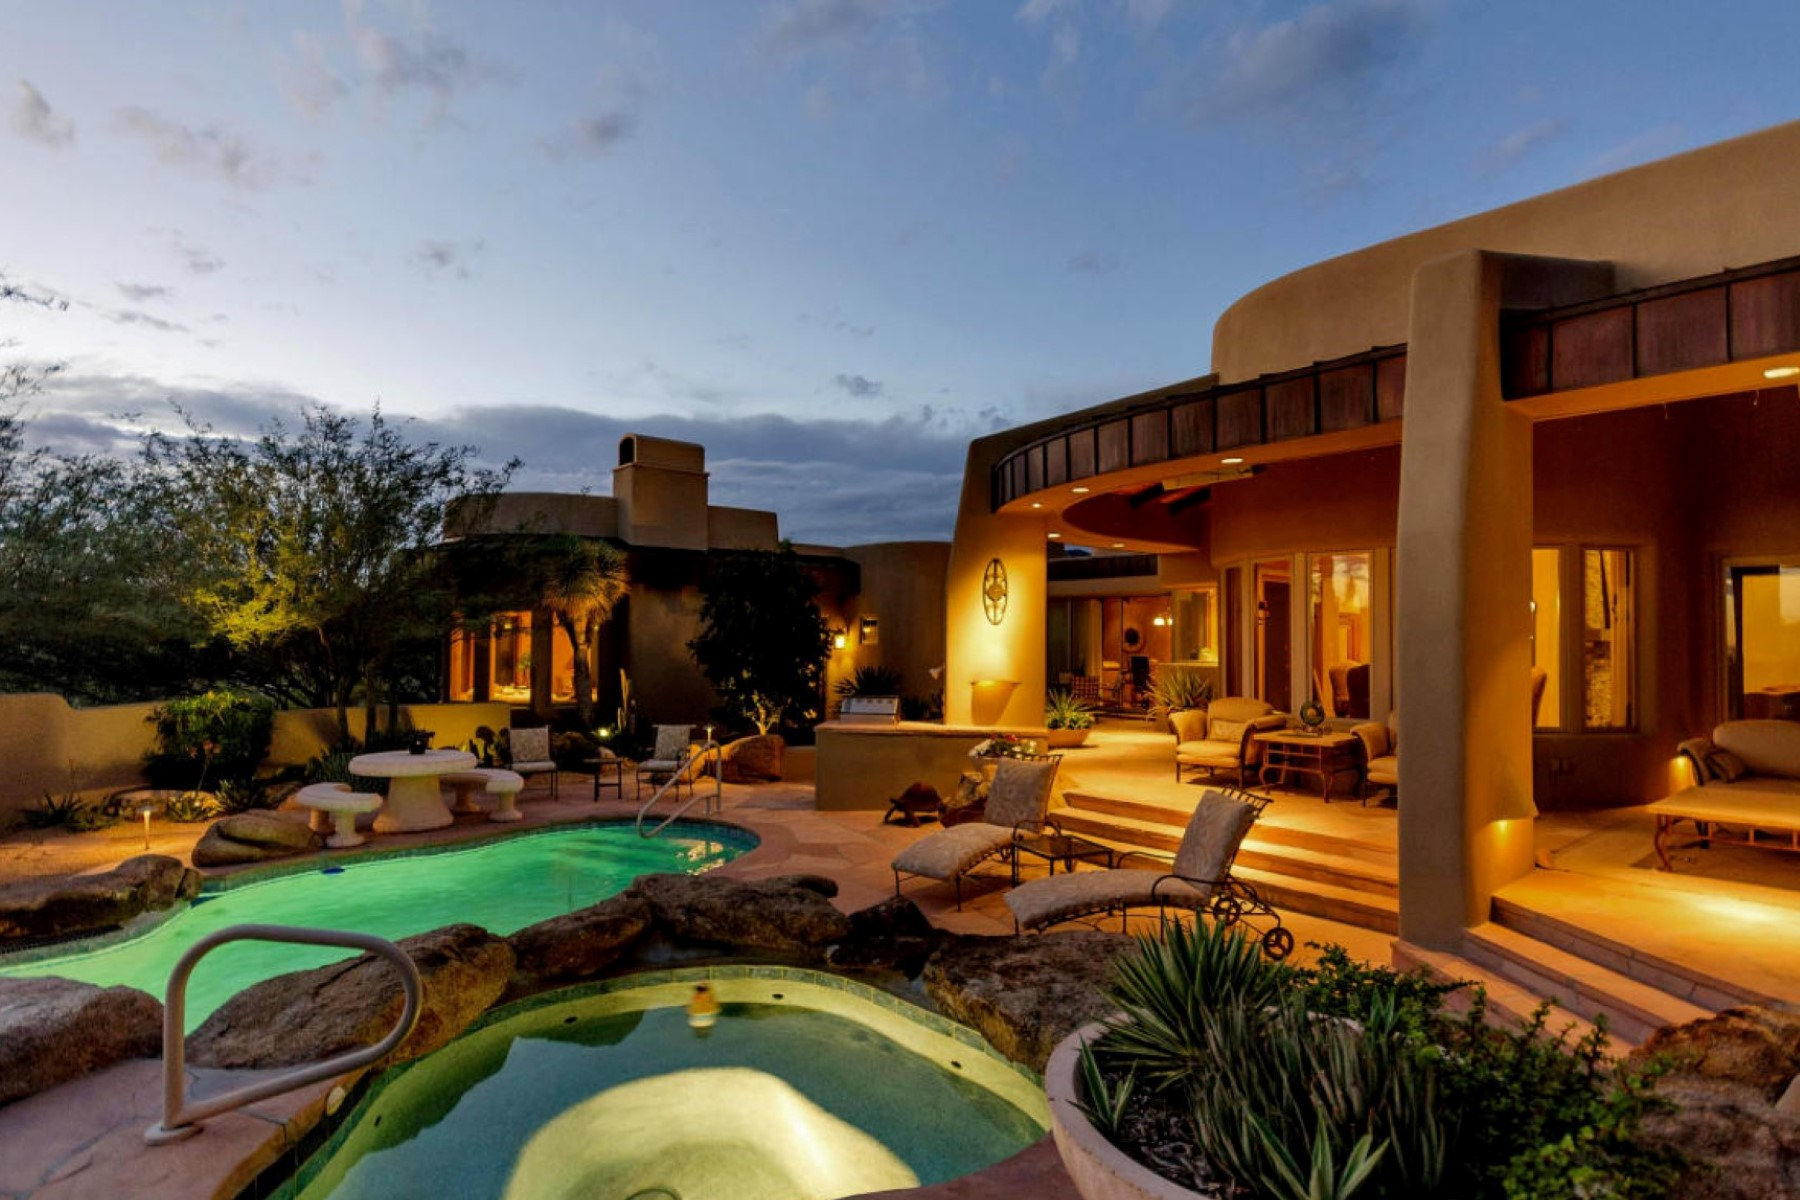 Property For Sale at Fabulous Desert Classic Style Home on Extremely Private Lot in Desert Mountain